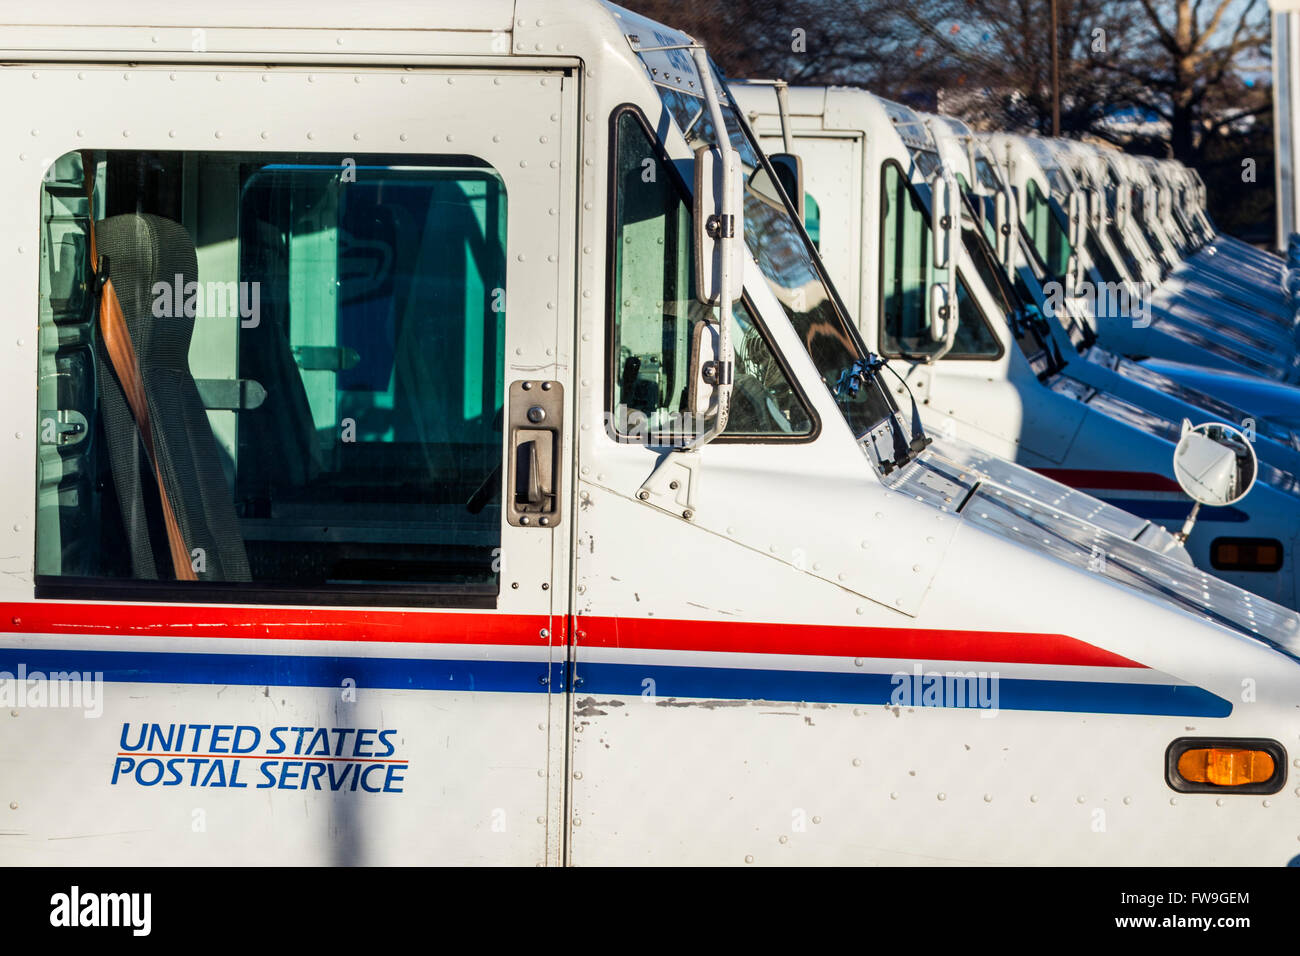 row of parked United States Postal Service vans - Stock Image